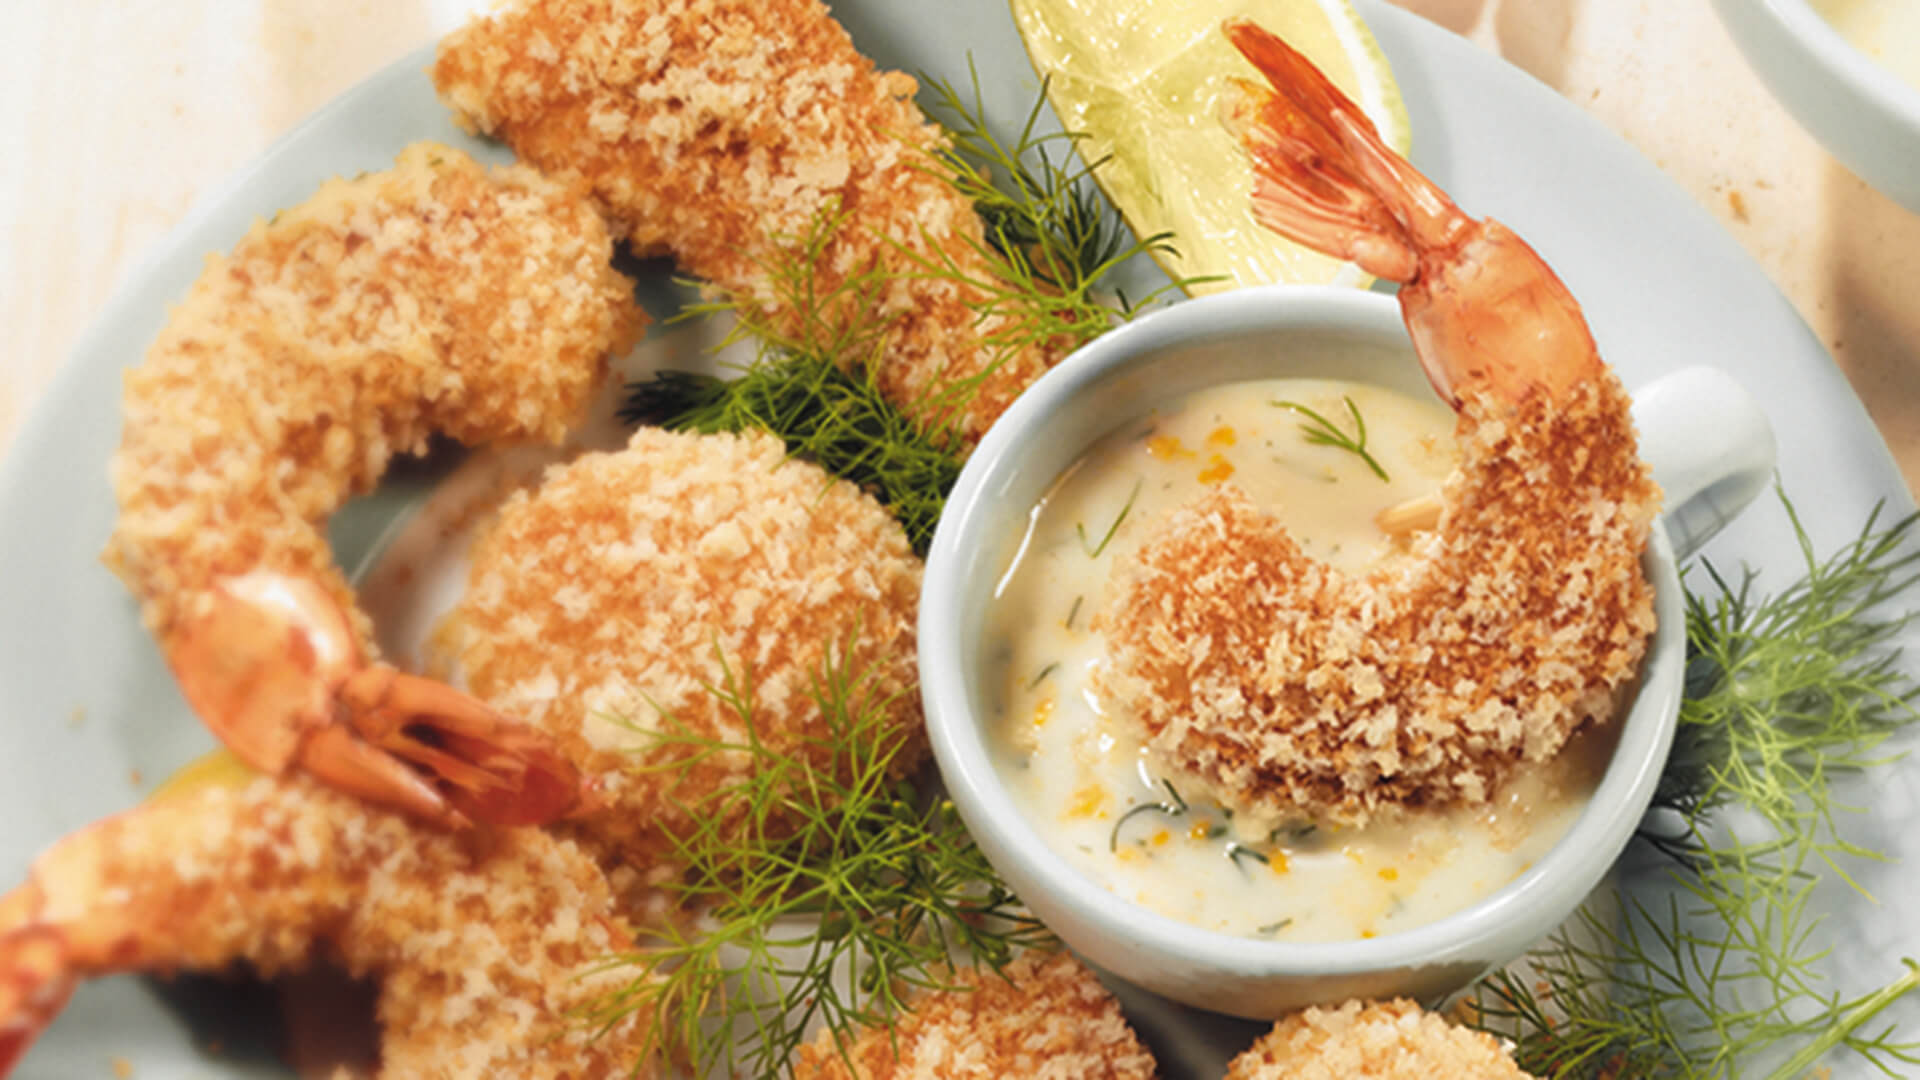 Breaded shrimp with dipping sauce and dill